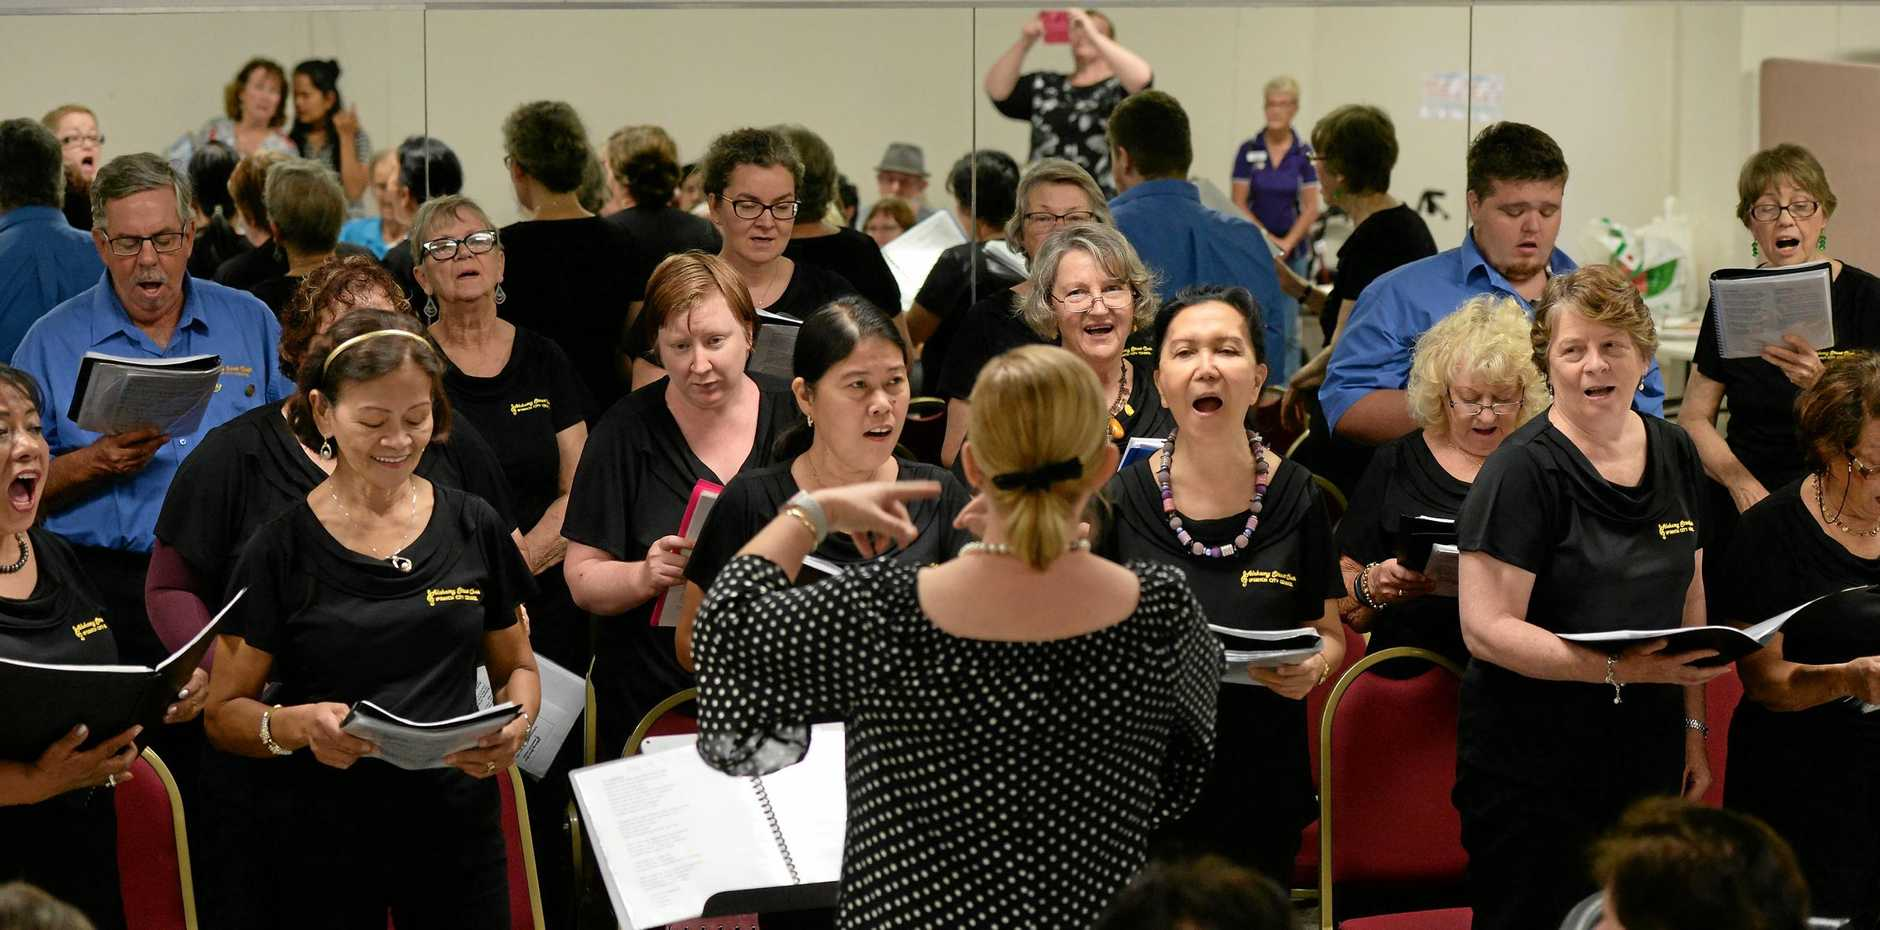 All the fun of the Alchemy Street Choir seniors performance at the Humanities Centre on Wednsday.